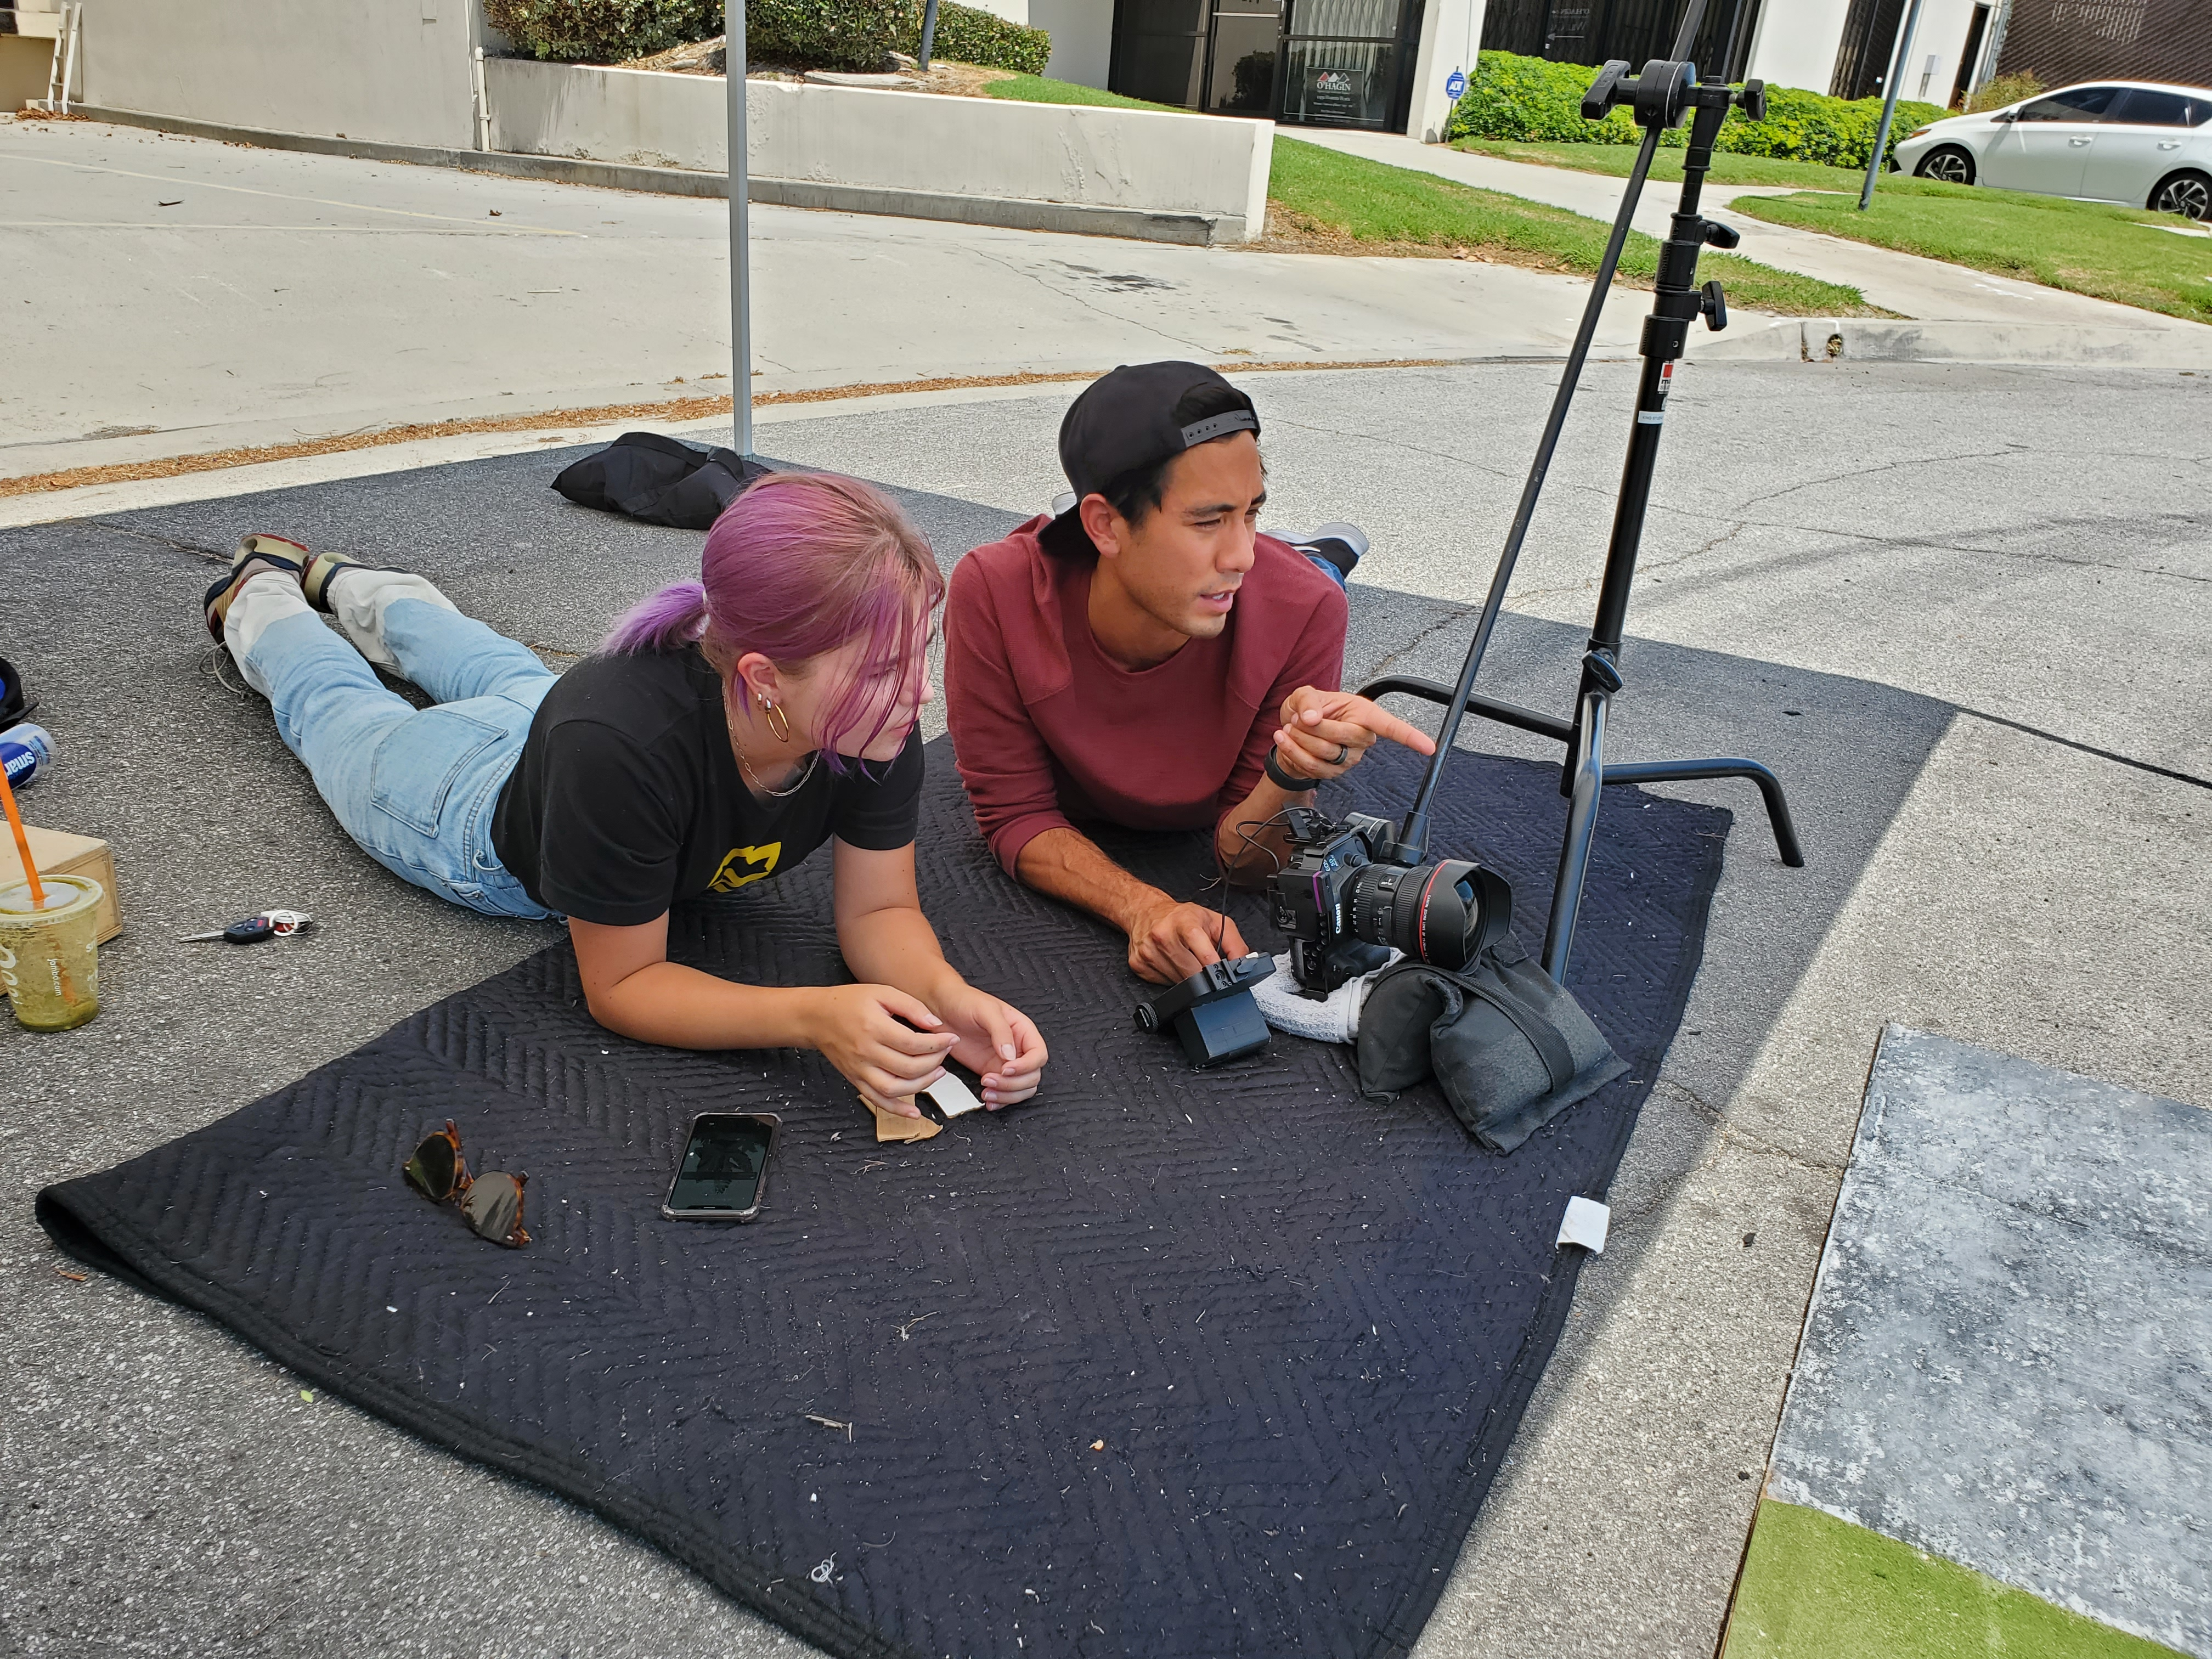 Zach King and his crew work on perfecting camera angles for their video shoot.